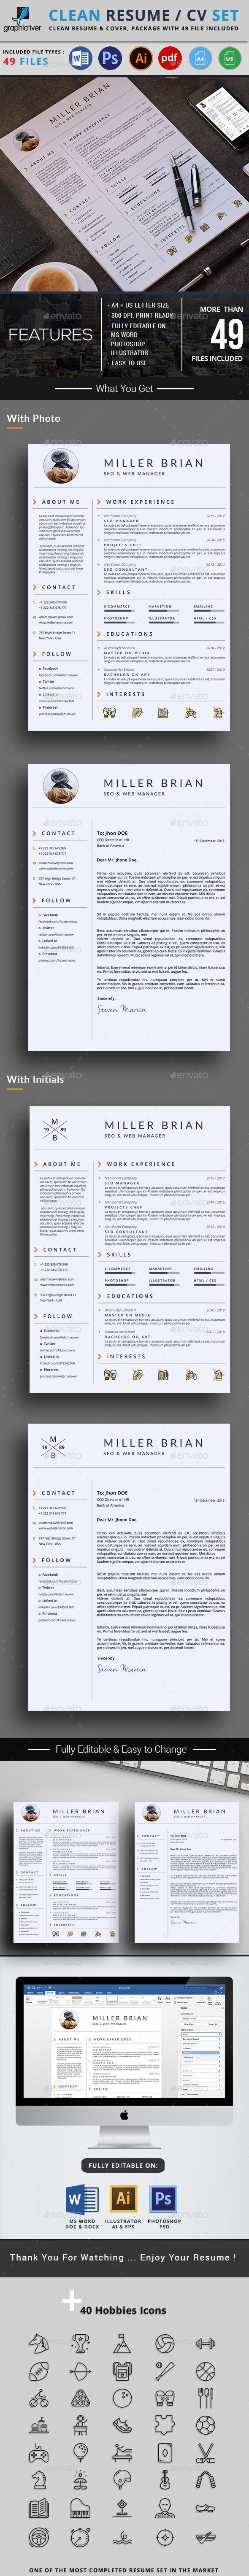 sample cover letters for resumes%0A Modern professional resume and cover letter templates in A  and US letter  formats  Flexible and